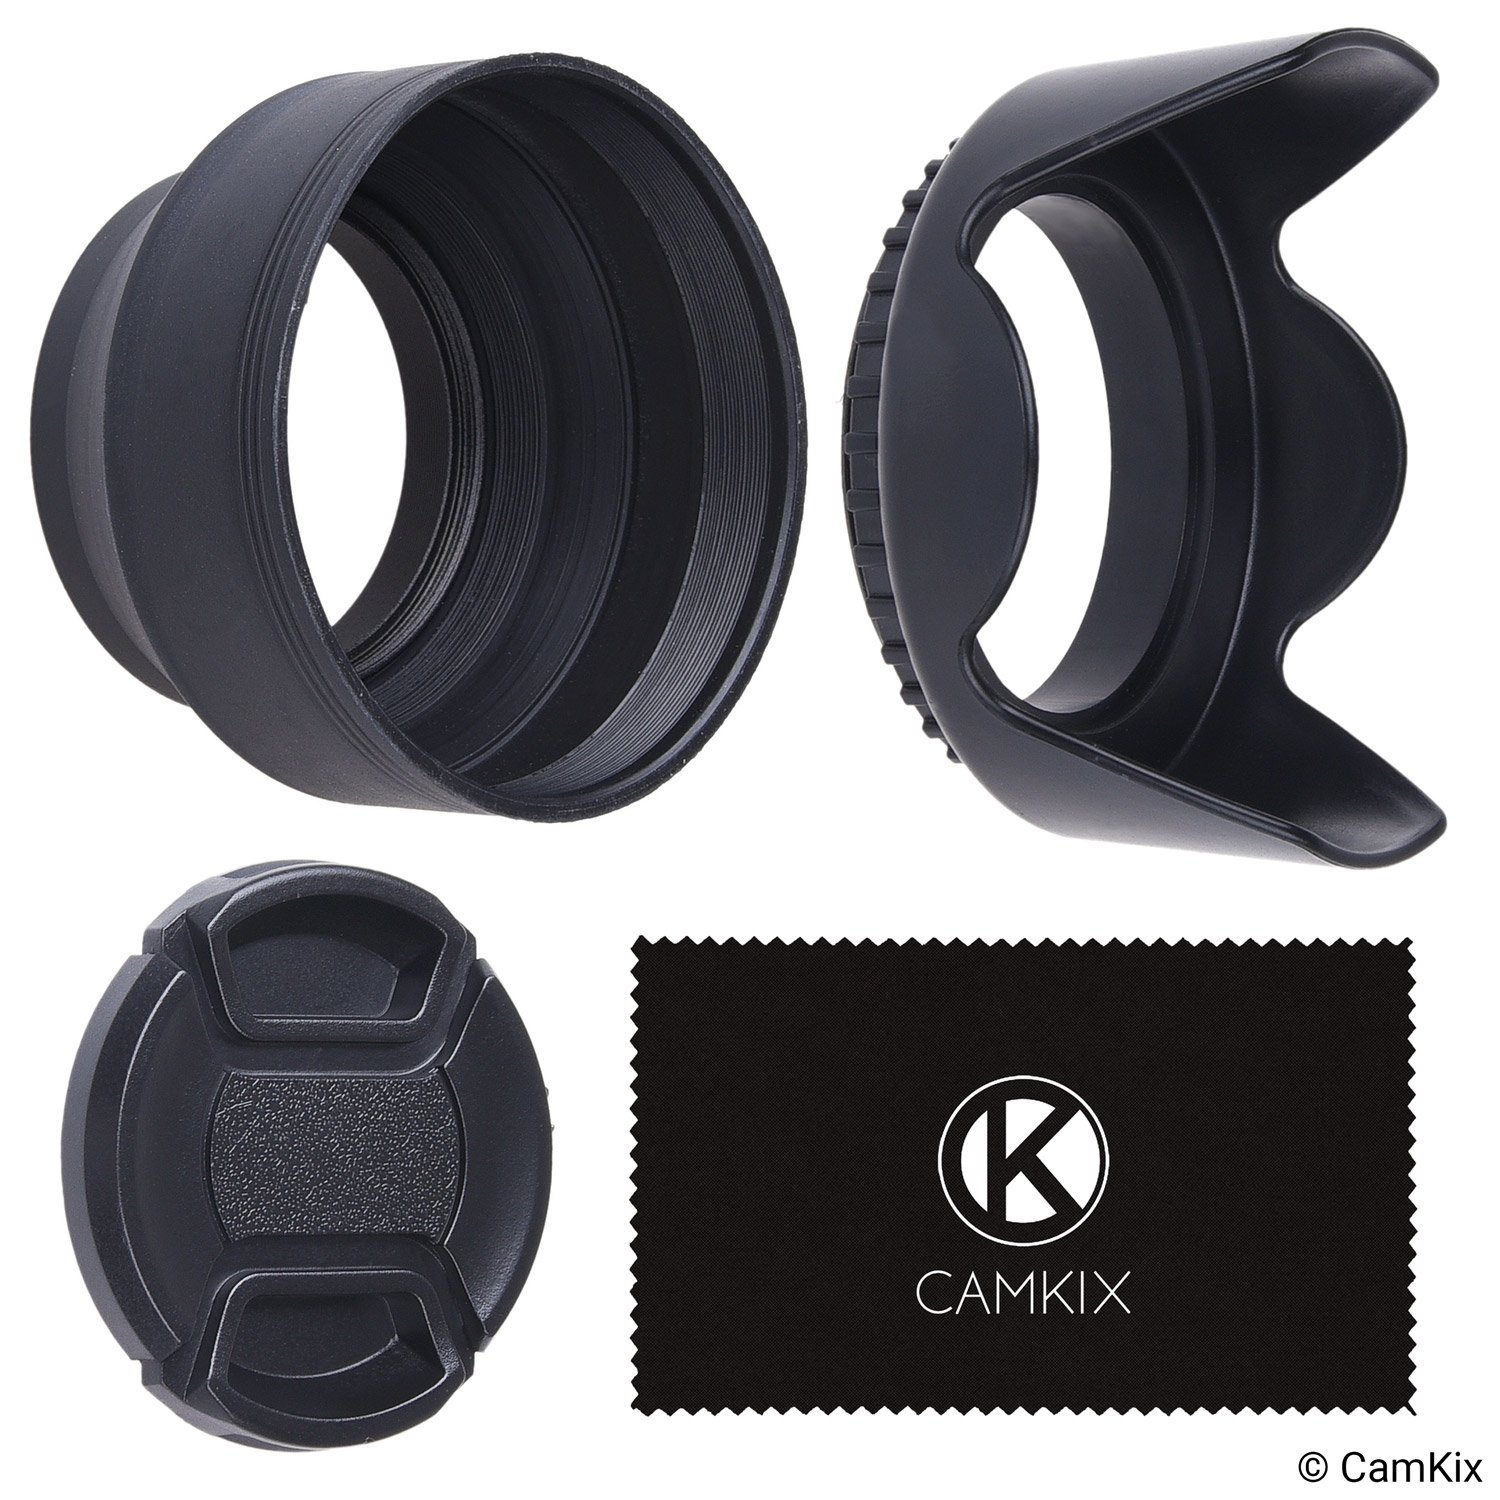 Set of 2 Camera Lens Hoods and 1 Lens Cap - Rubber (Collapsible) + Tulip Flower - Sun Shade / Shield - Reduces Lens Flare and Glare - Blocks Excess Sunlight for Enhanced Photography and Video Footage CamKix D0465-CLB-52M